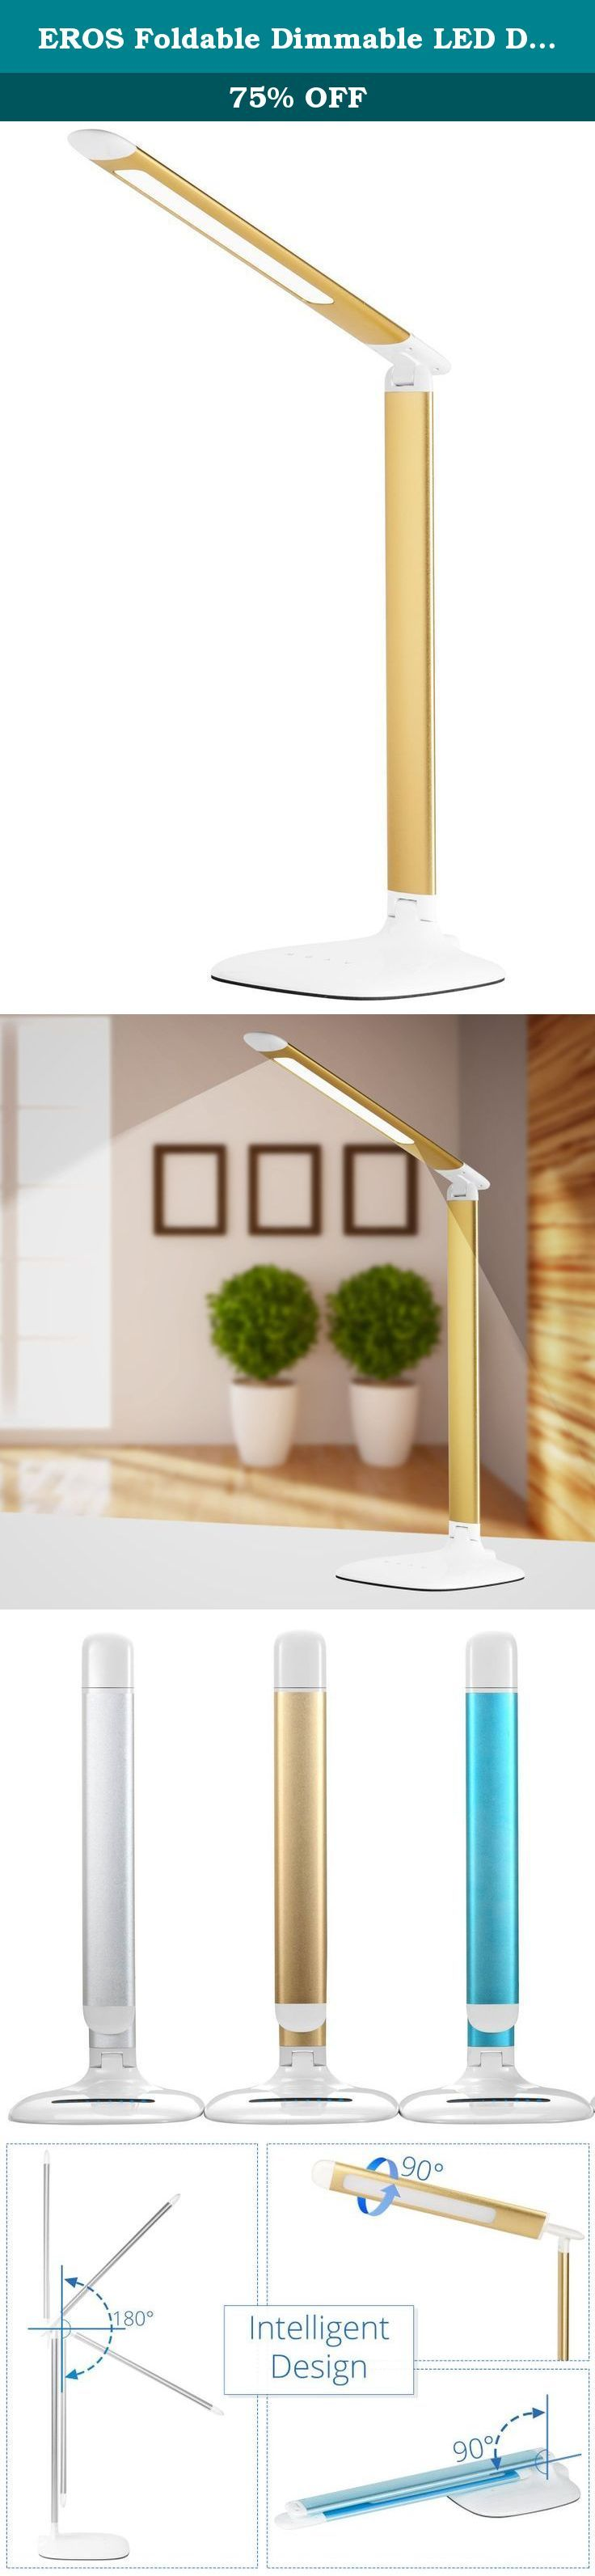 6 Eco Friendly Diy Homes Built For 20k Or Less: 1000+ Ideas About Led Desk Lamp On Pinterest